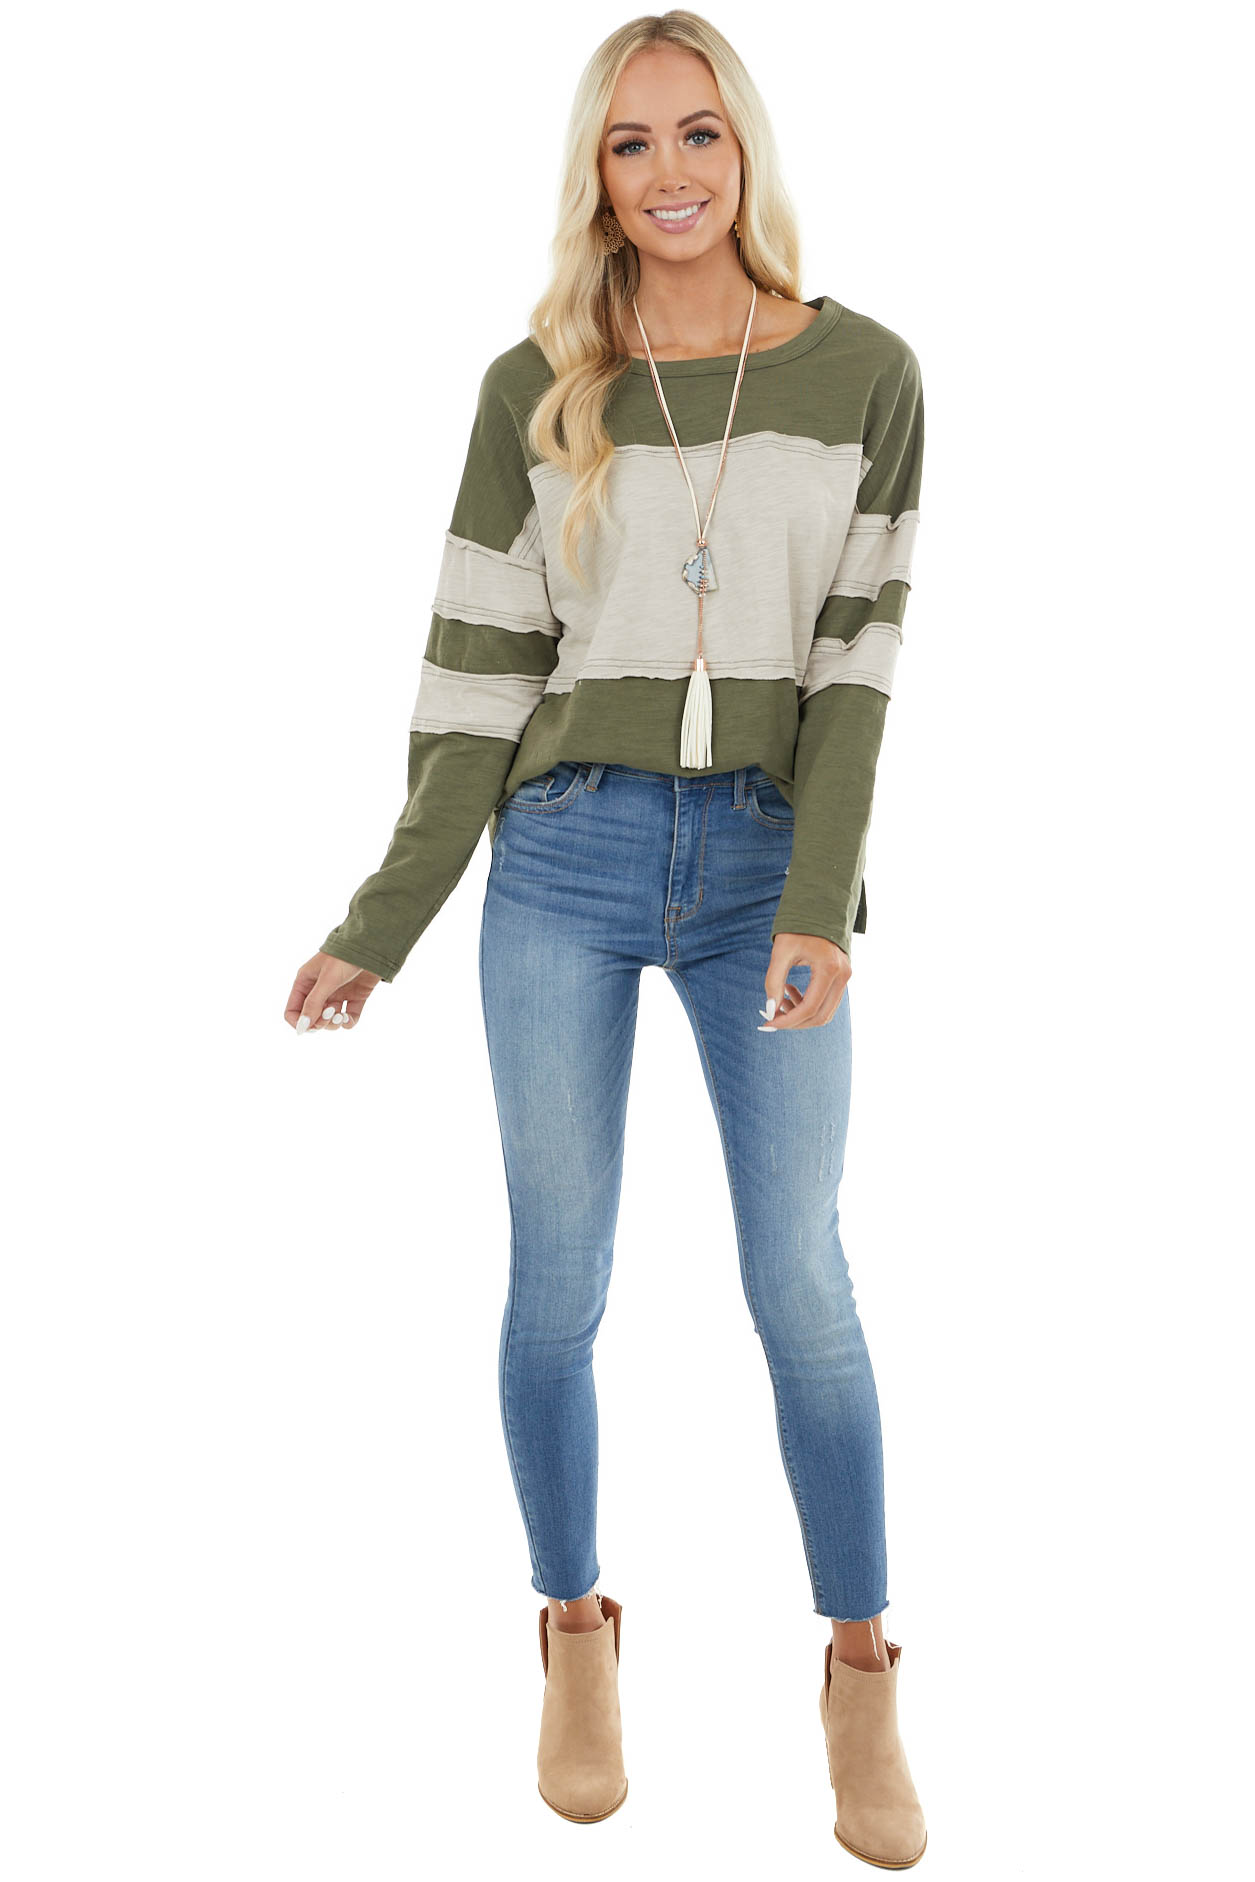 Olive and Oatmeal Colorblock Top with Raw Edge Details